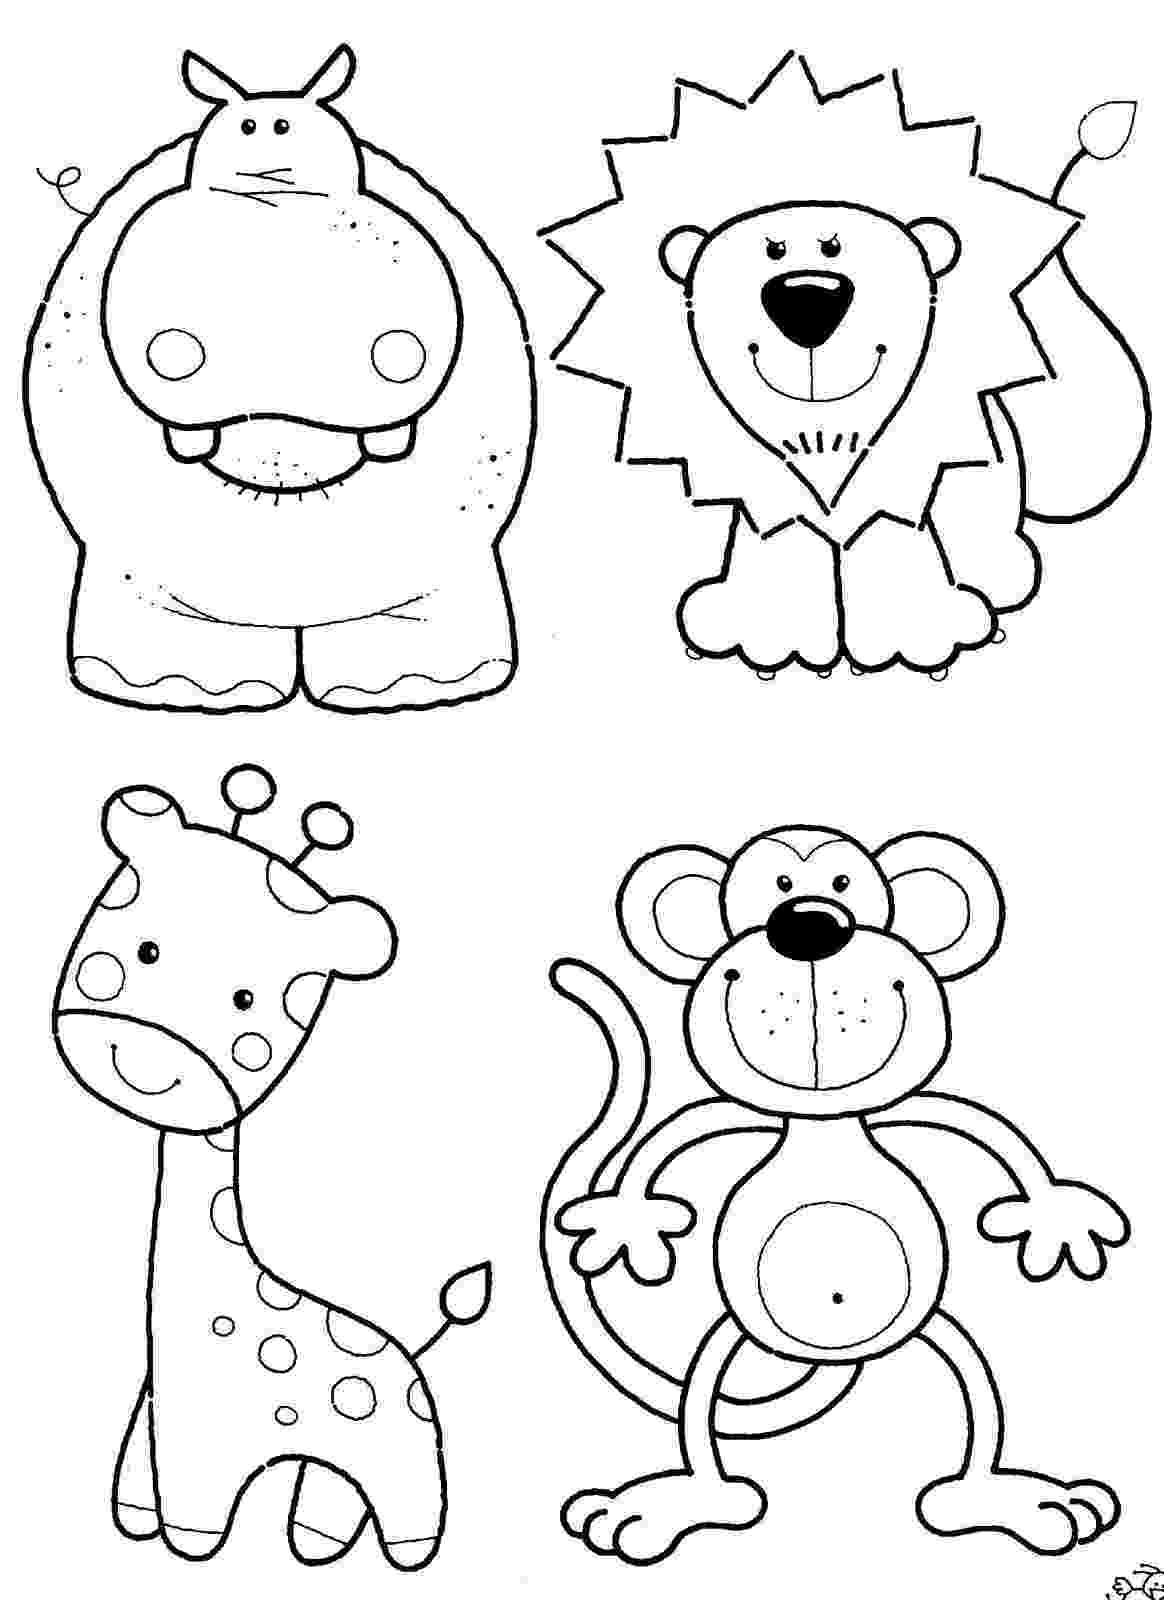 free colouring pages wild animals introduce kids wild animals using animals coloring free colouring wild pages animals